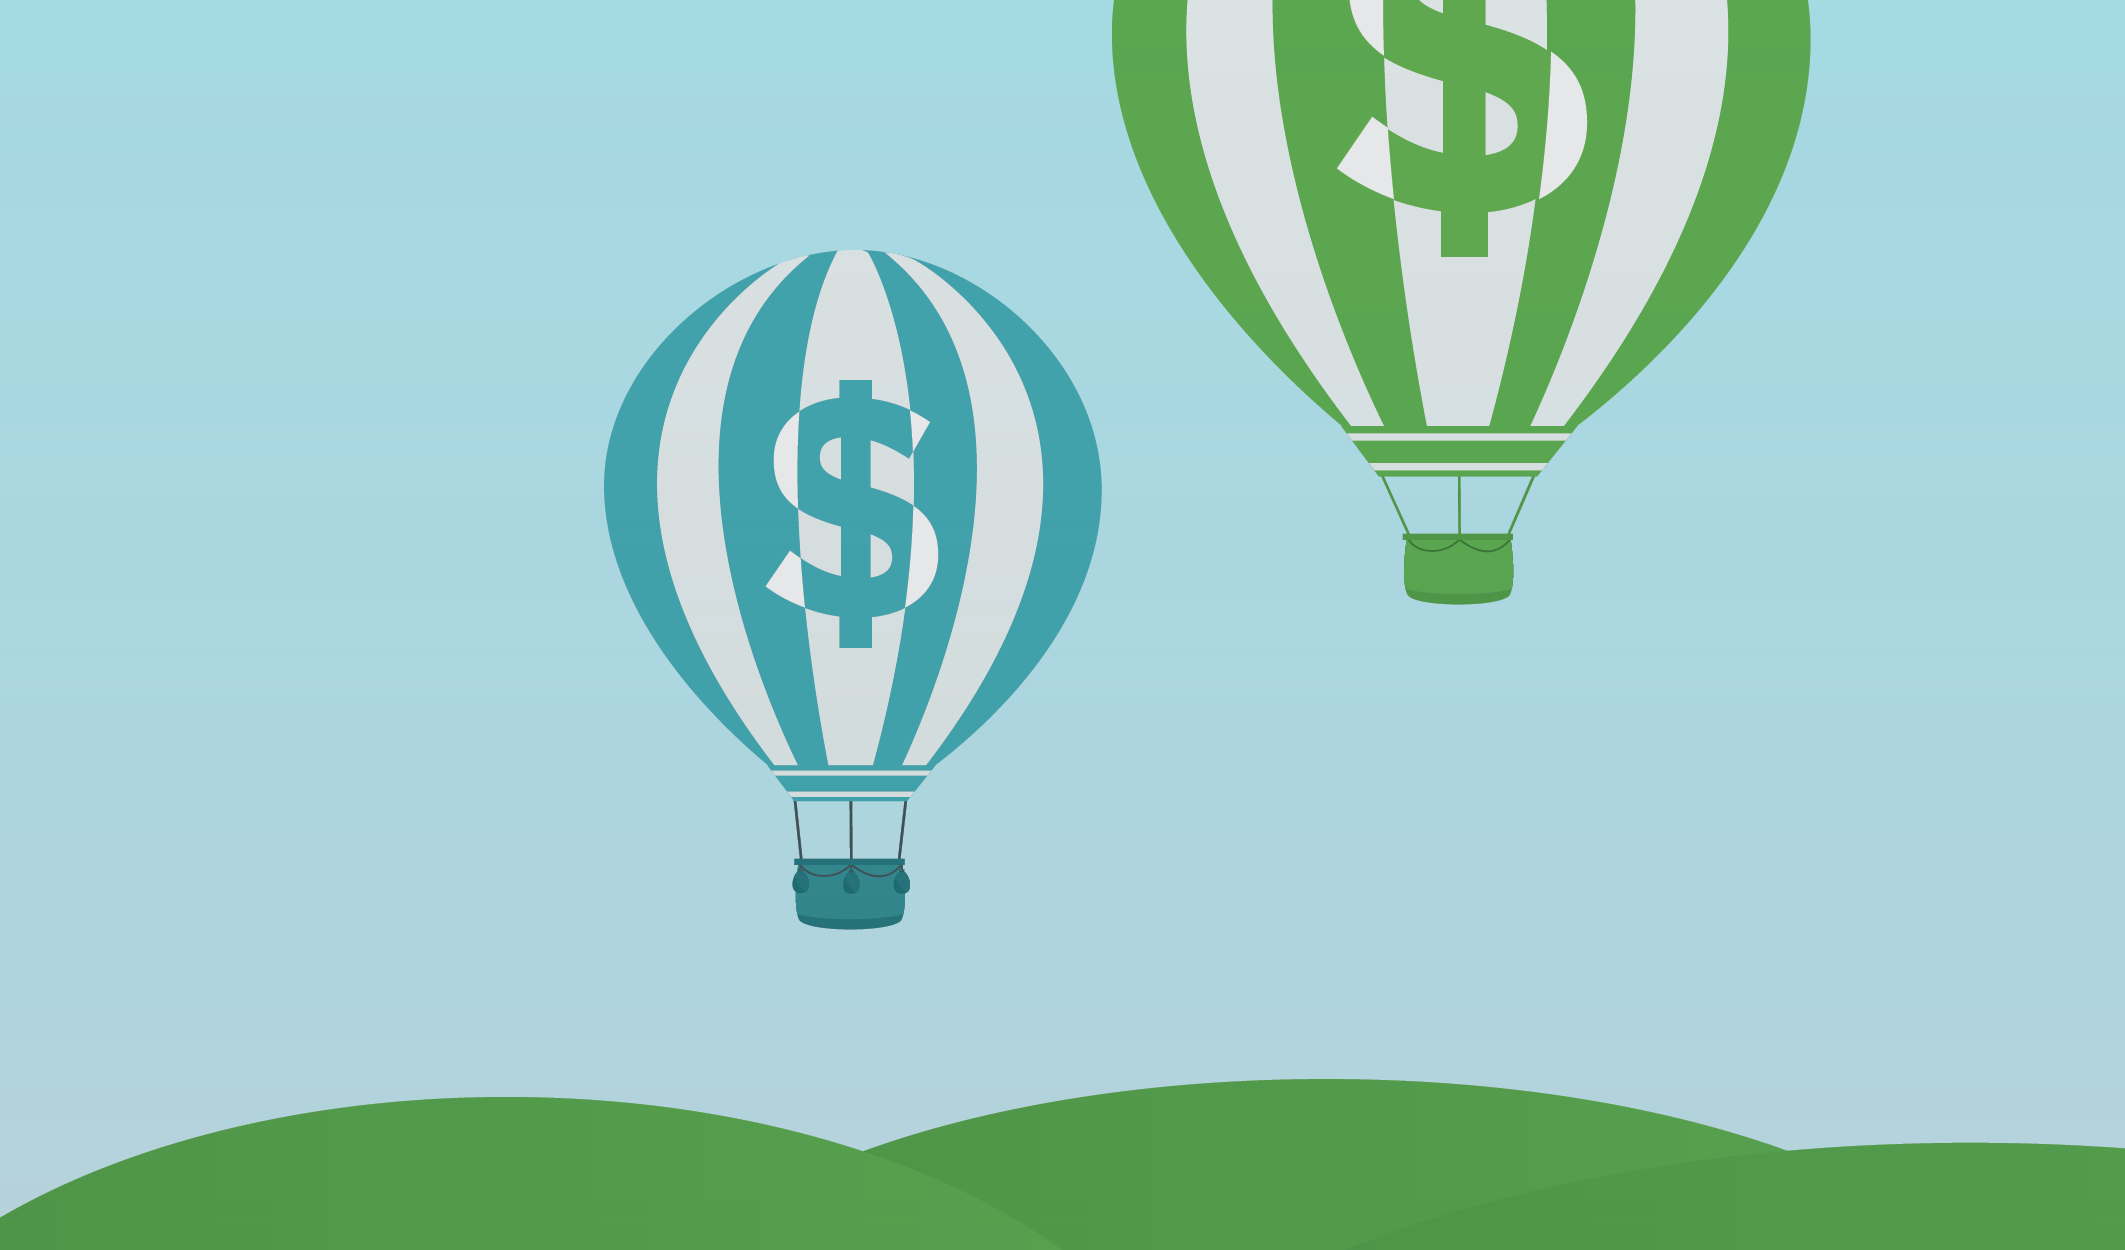 Hot air balloons, representing cost inflation on cable bills